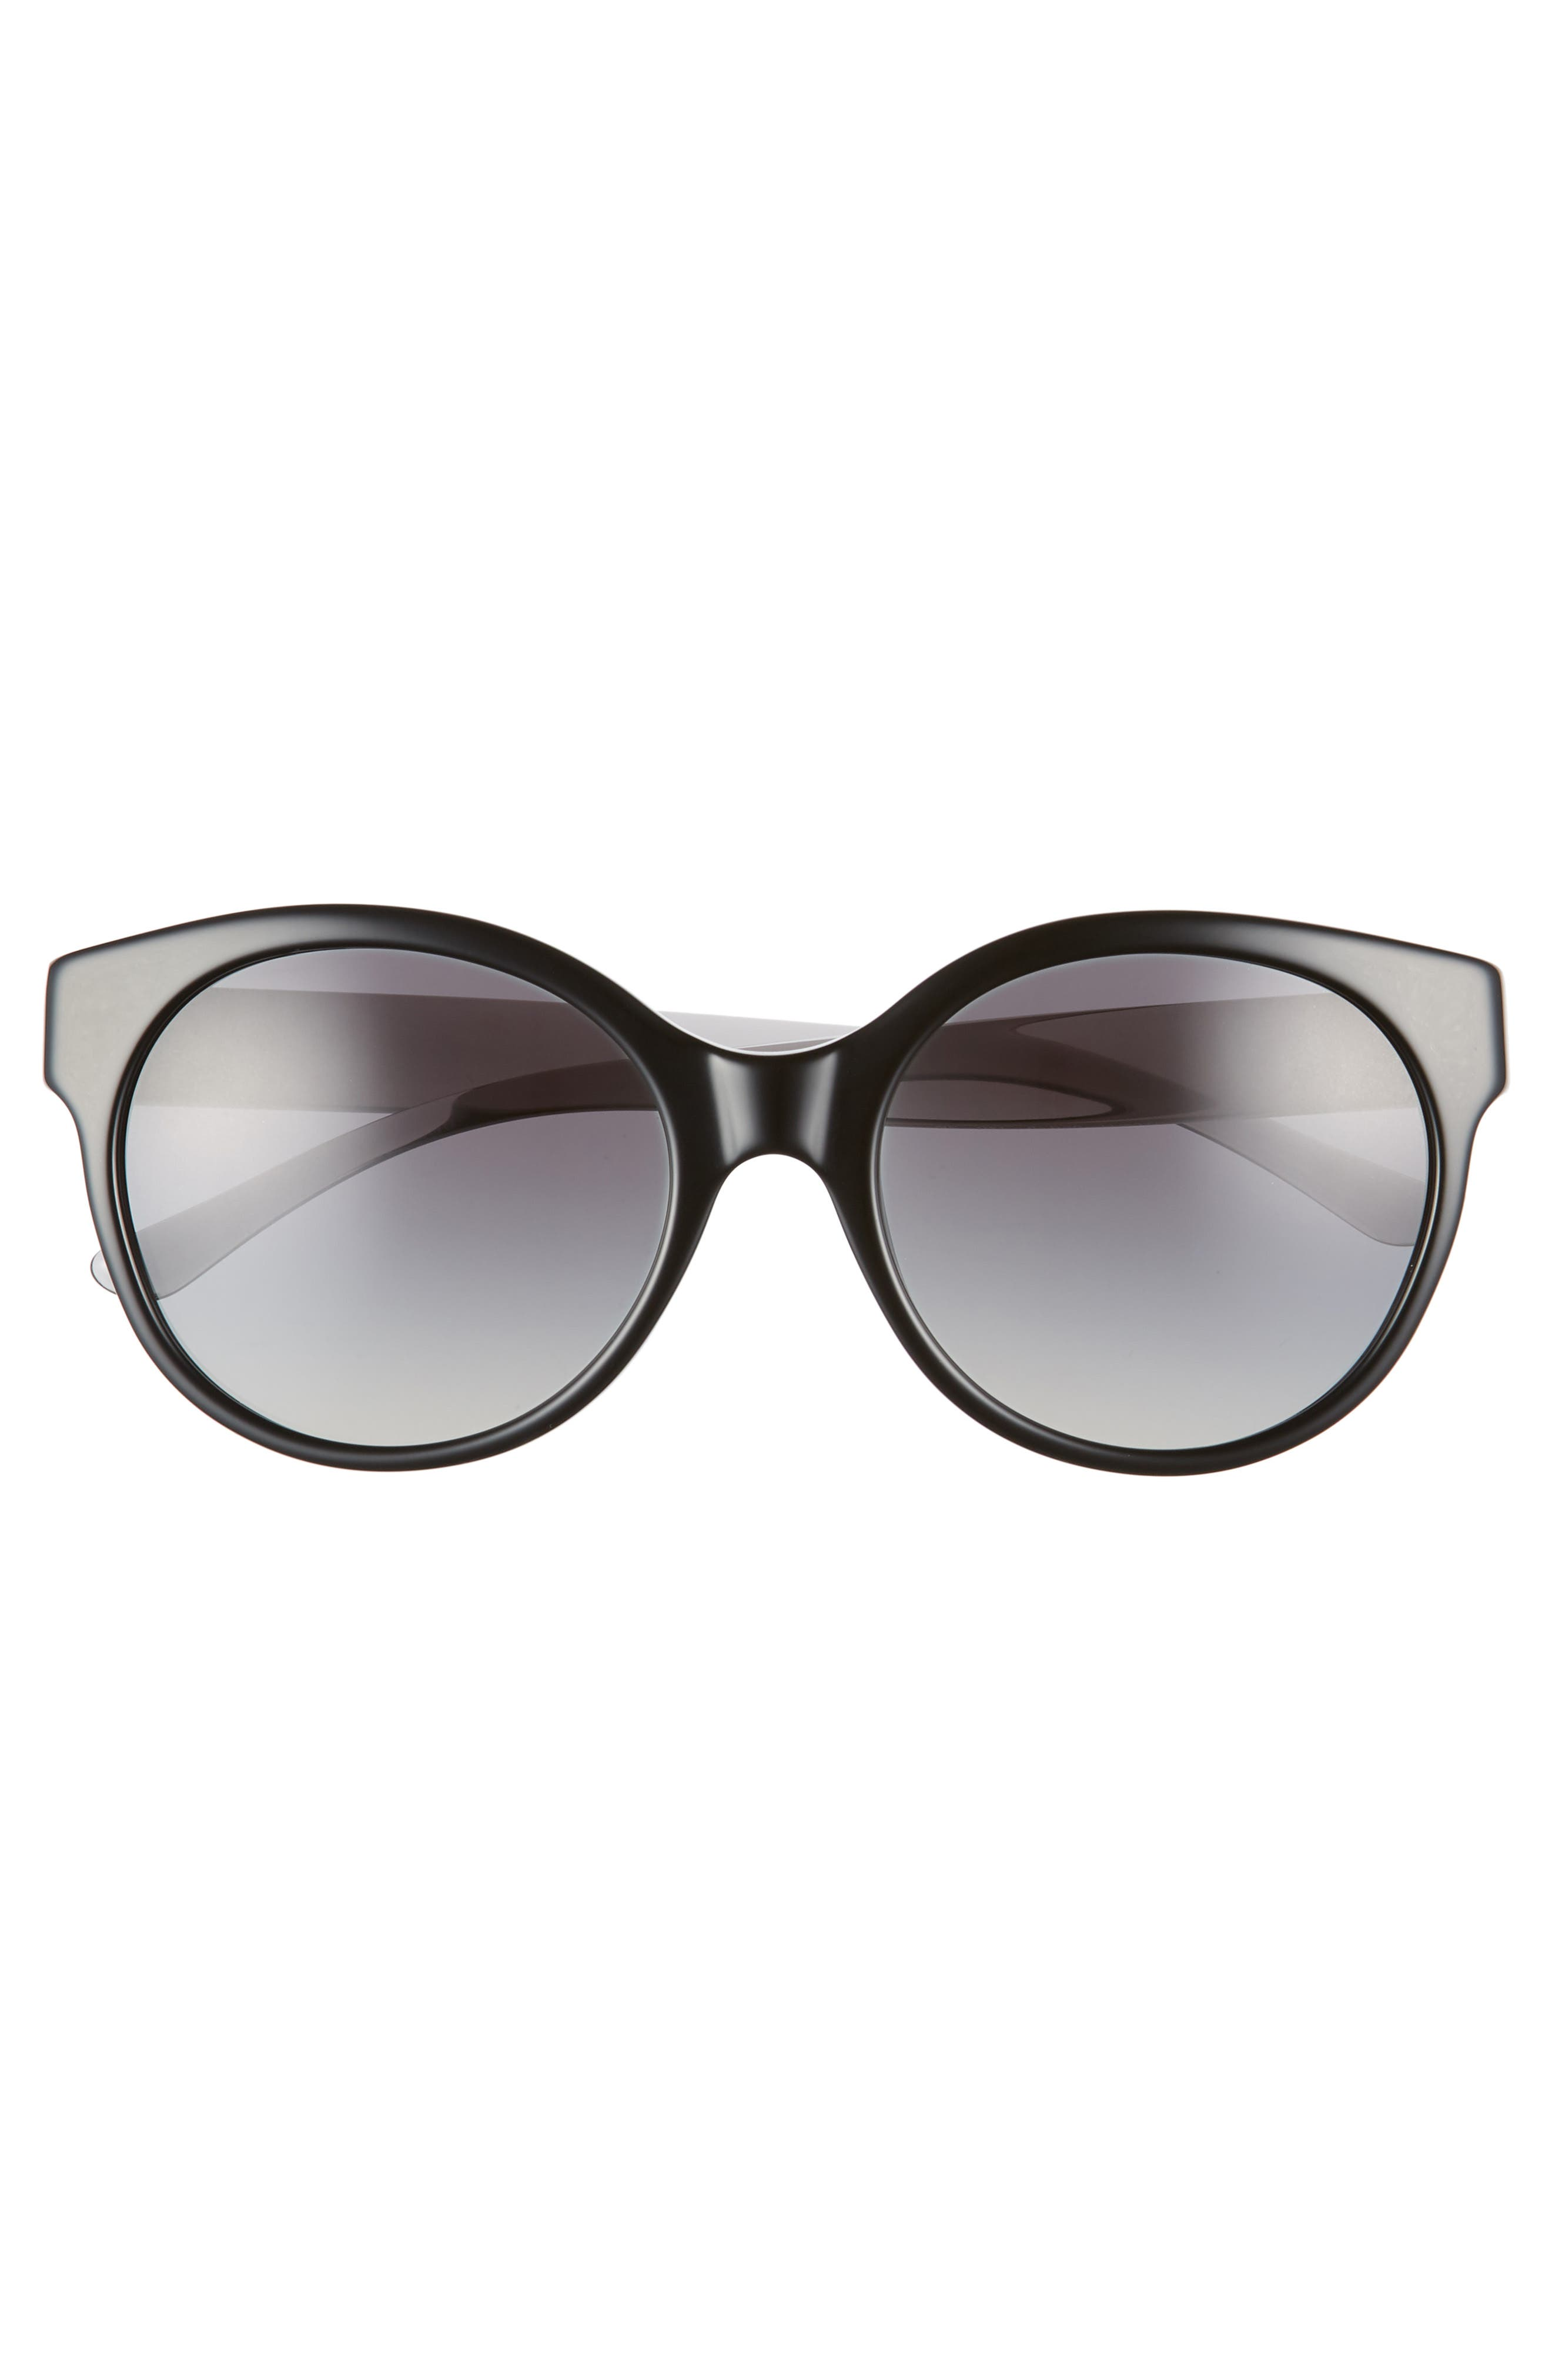 TORY BURCH, Stacked T 55mm Round Sunglasses, Alternate thumbnail 3, color, BLACK GRADIENT